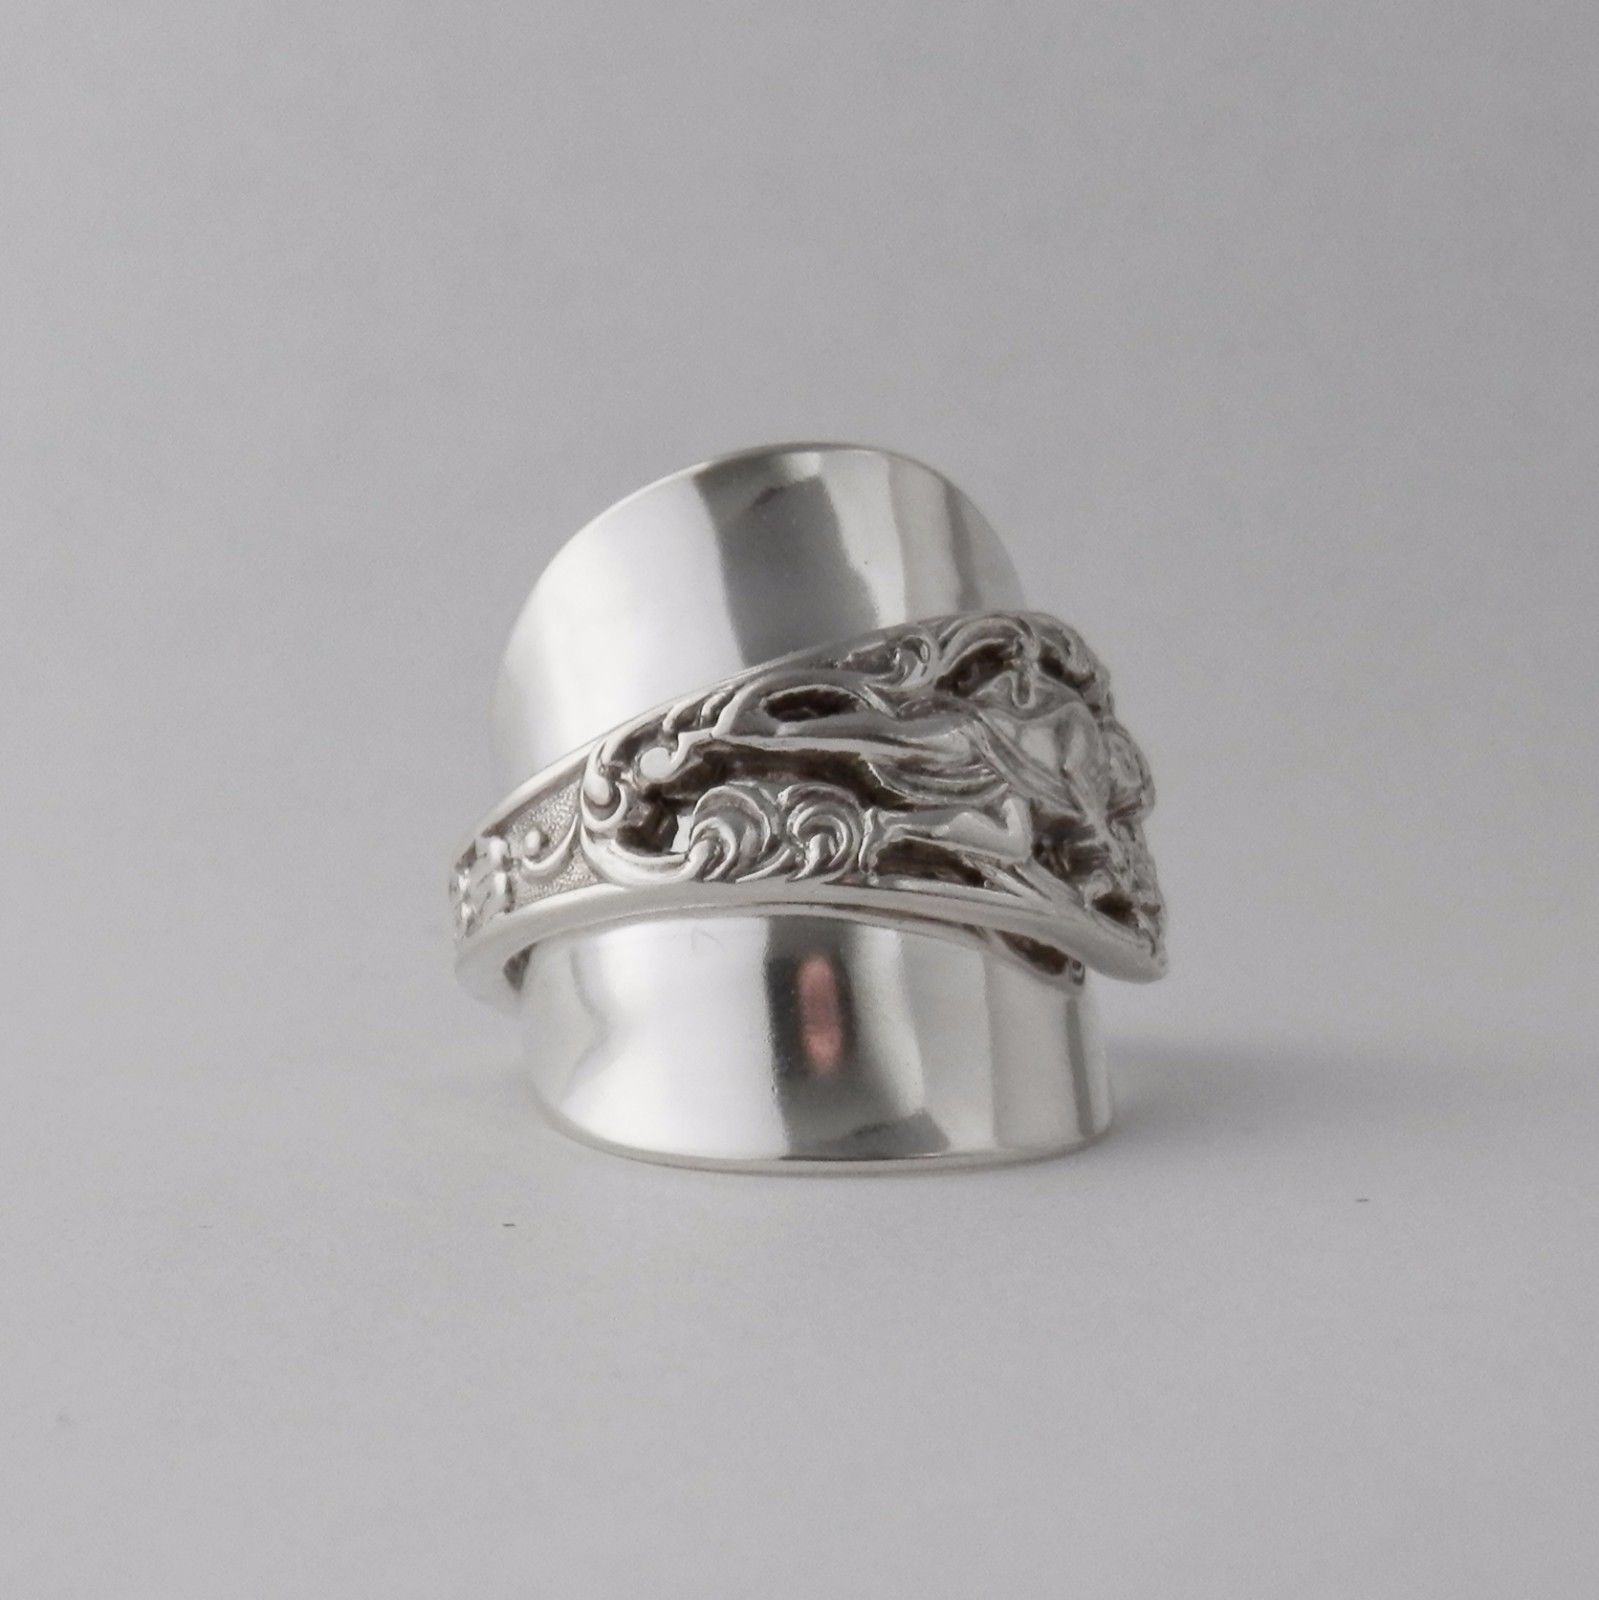 Spoon Ring Heavy Handmade Antique Sterling Silver 925